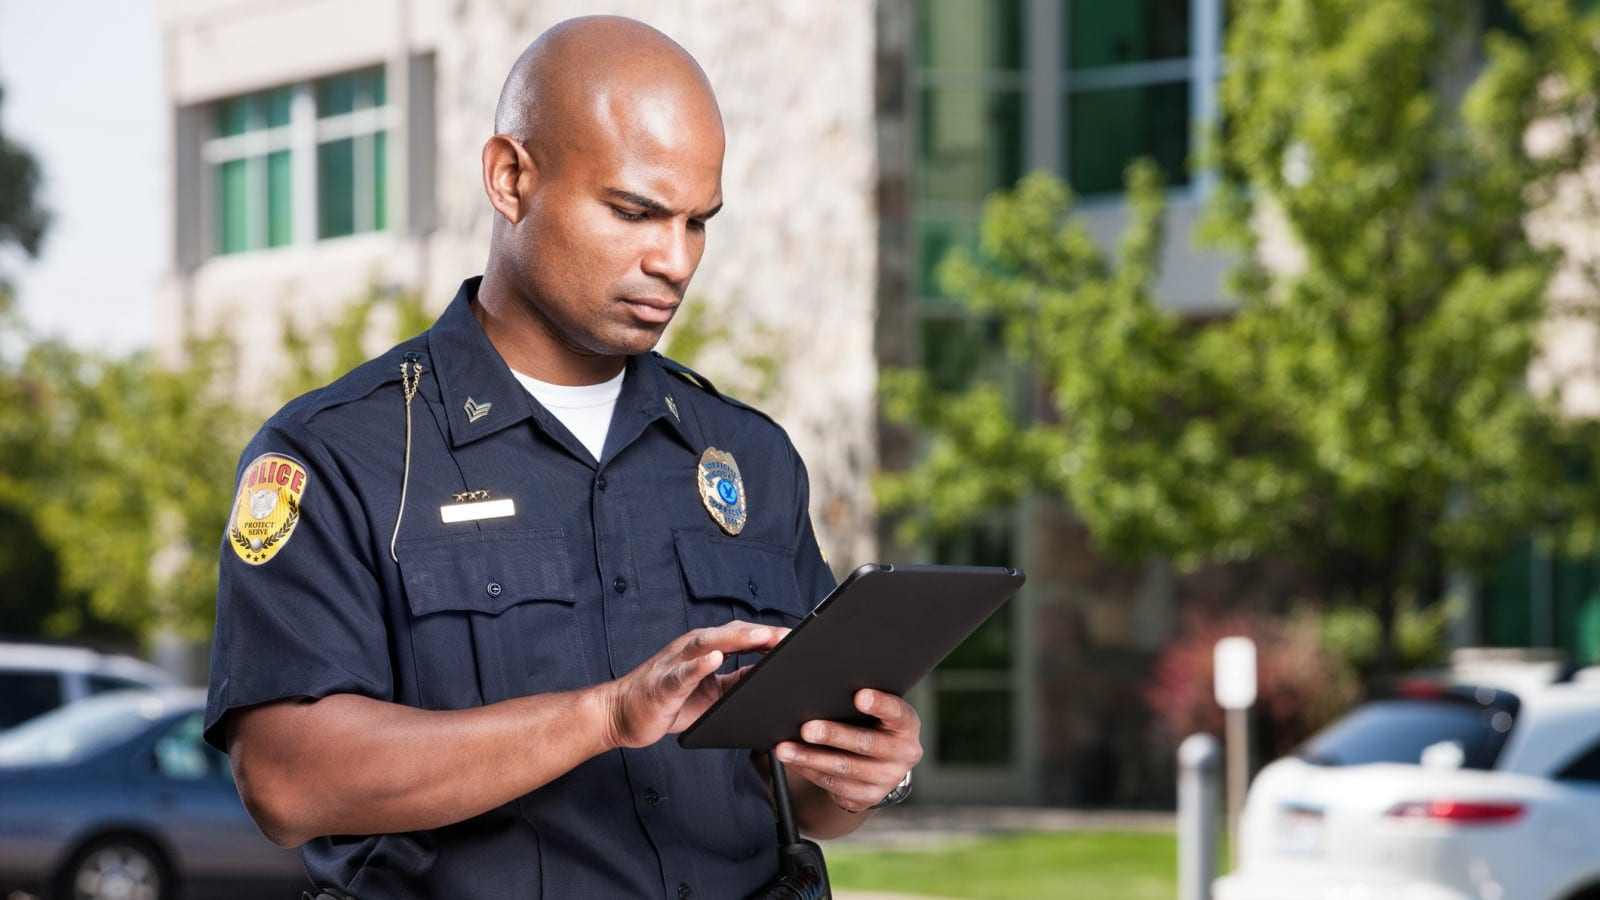 Police Officer Completing A Police Report Stock Photo